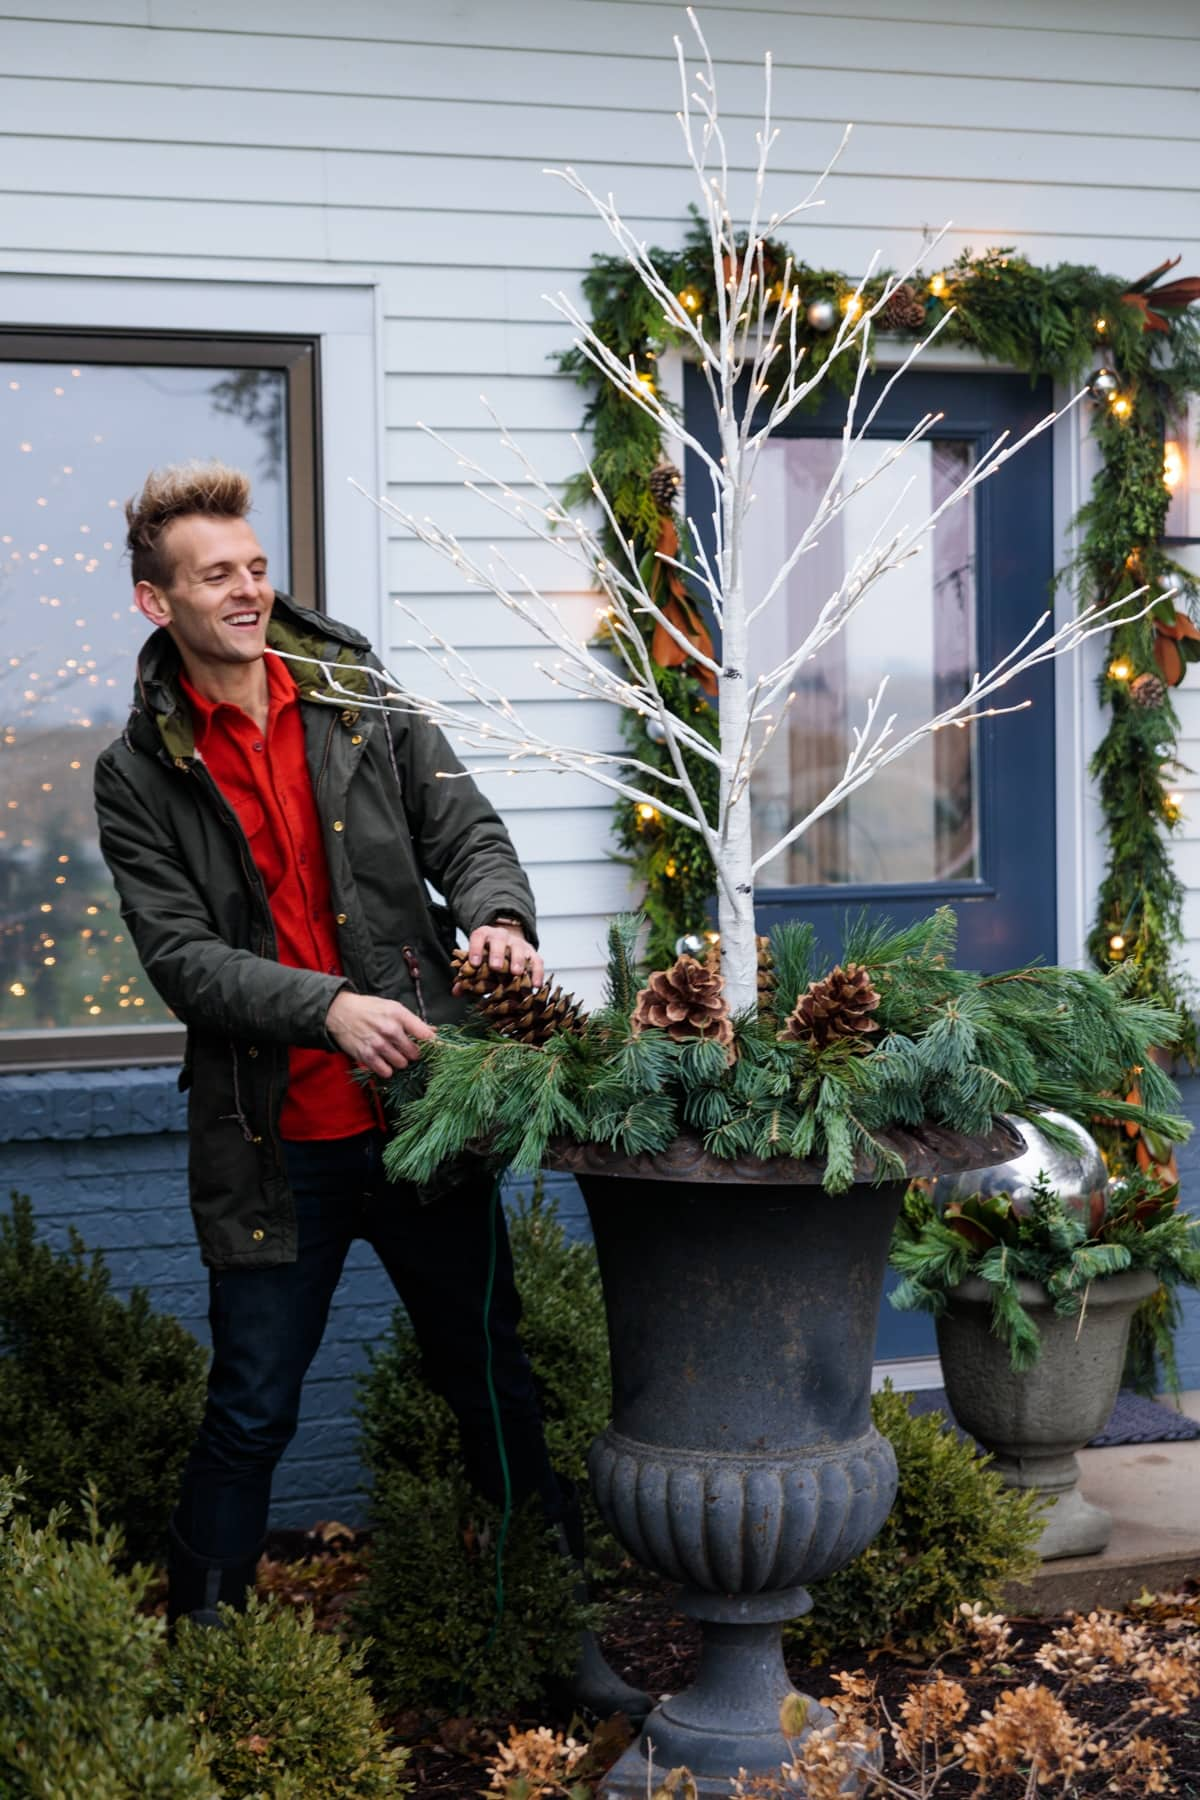 Outdoor Christmas Decor This Year | Wyse Guide